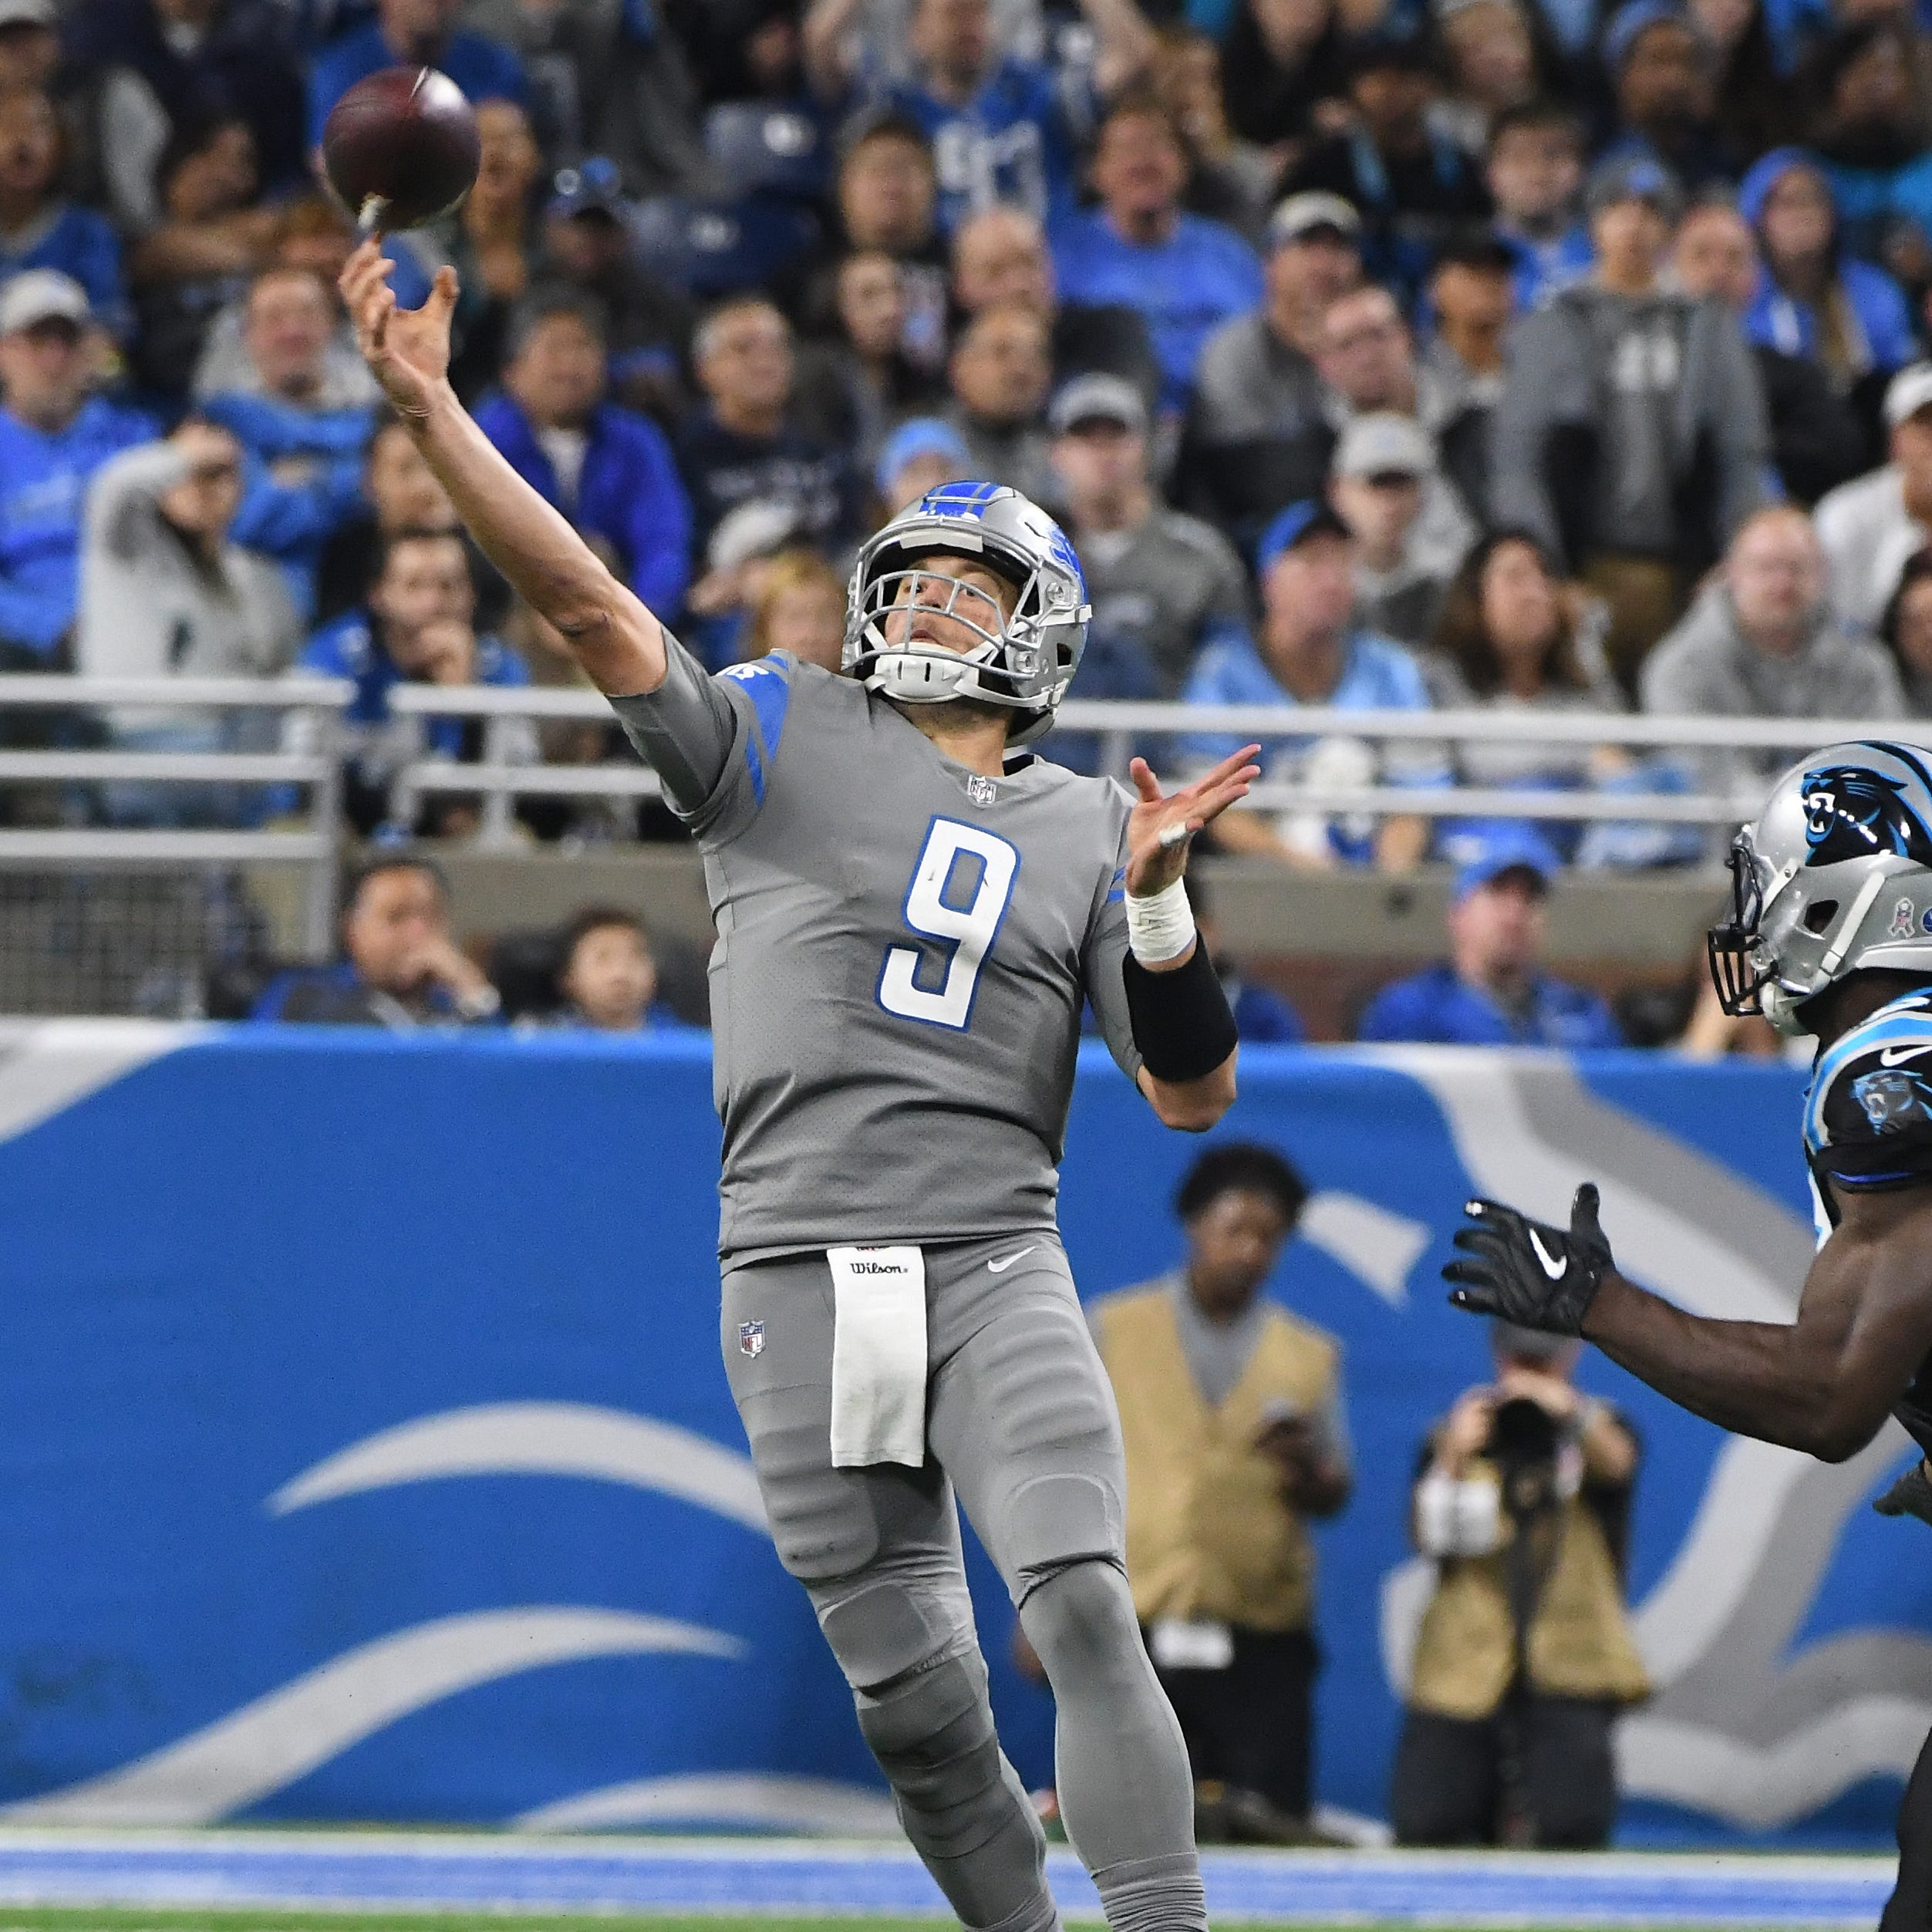 Justin Rogers' Lions grades: Performance vs. Carolina worthy of honor roll